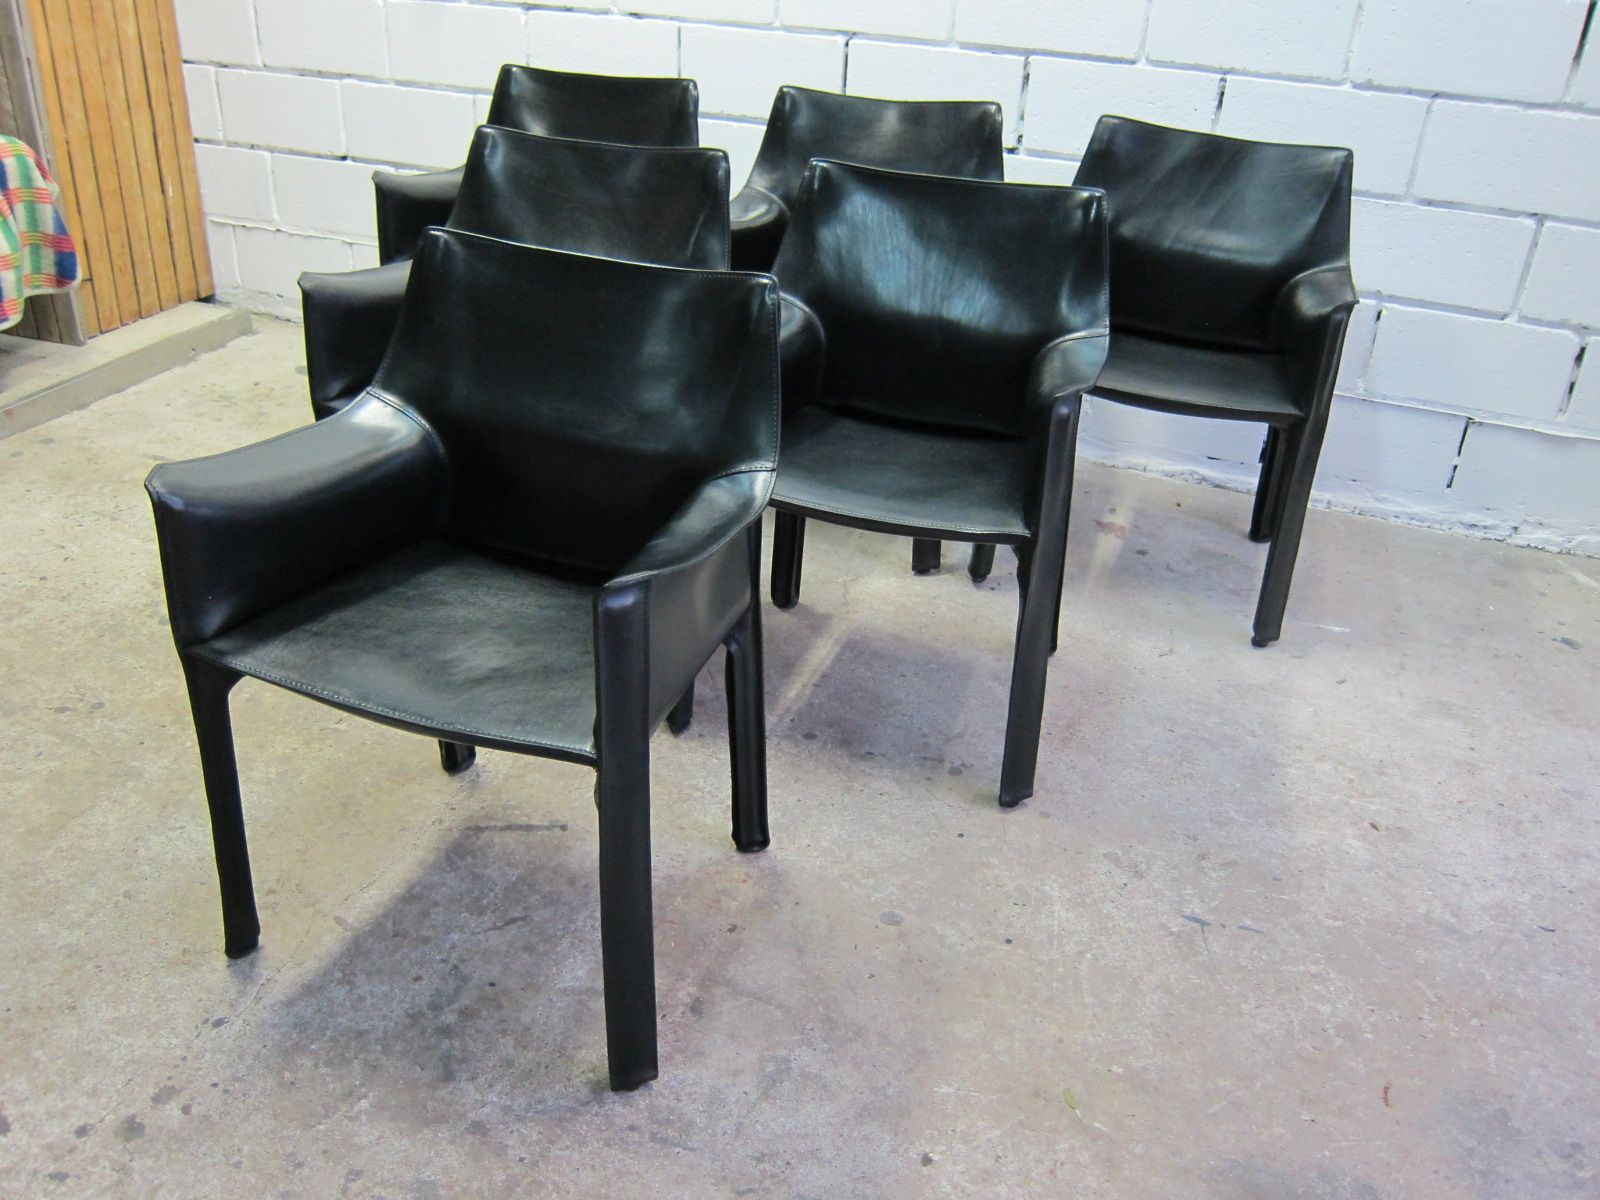 CAB 413 Chairs by Mario Bellini for Cassina 1980s Set of 6 for